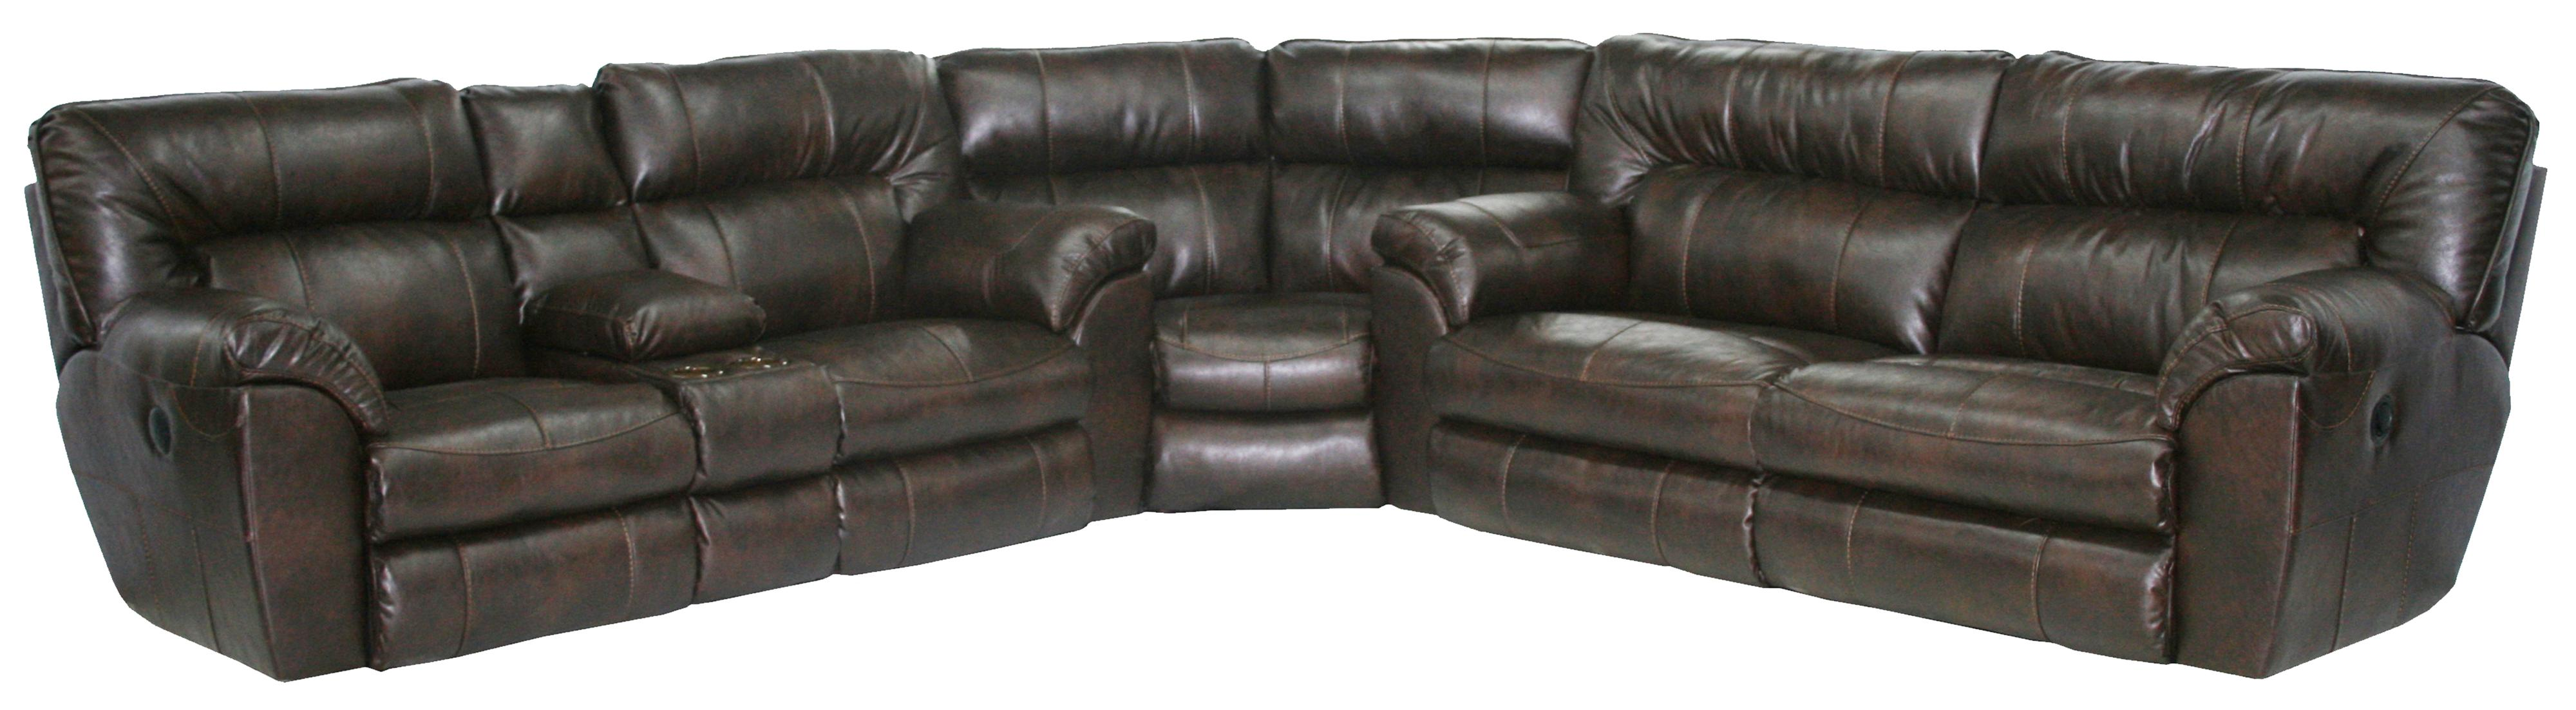 nolan power reclining sofa black and red designs catnapper sectional with left